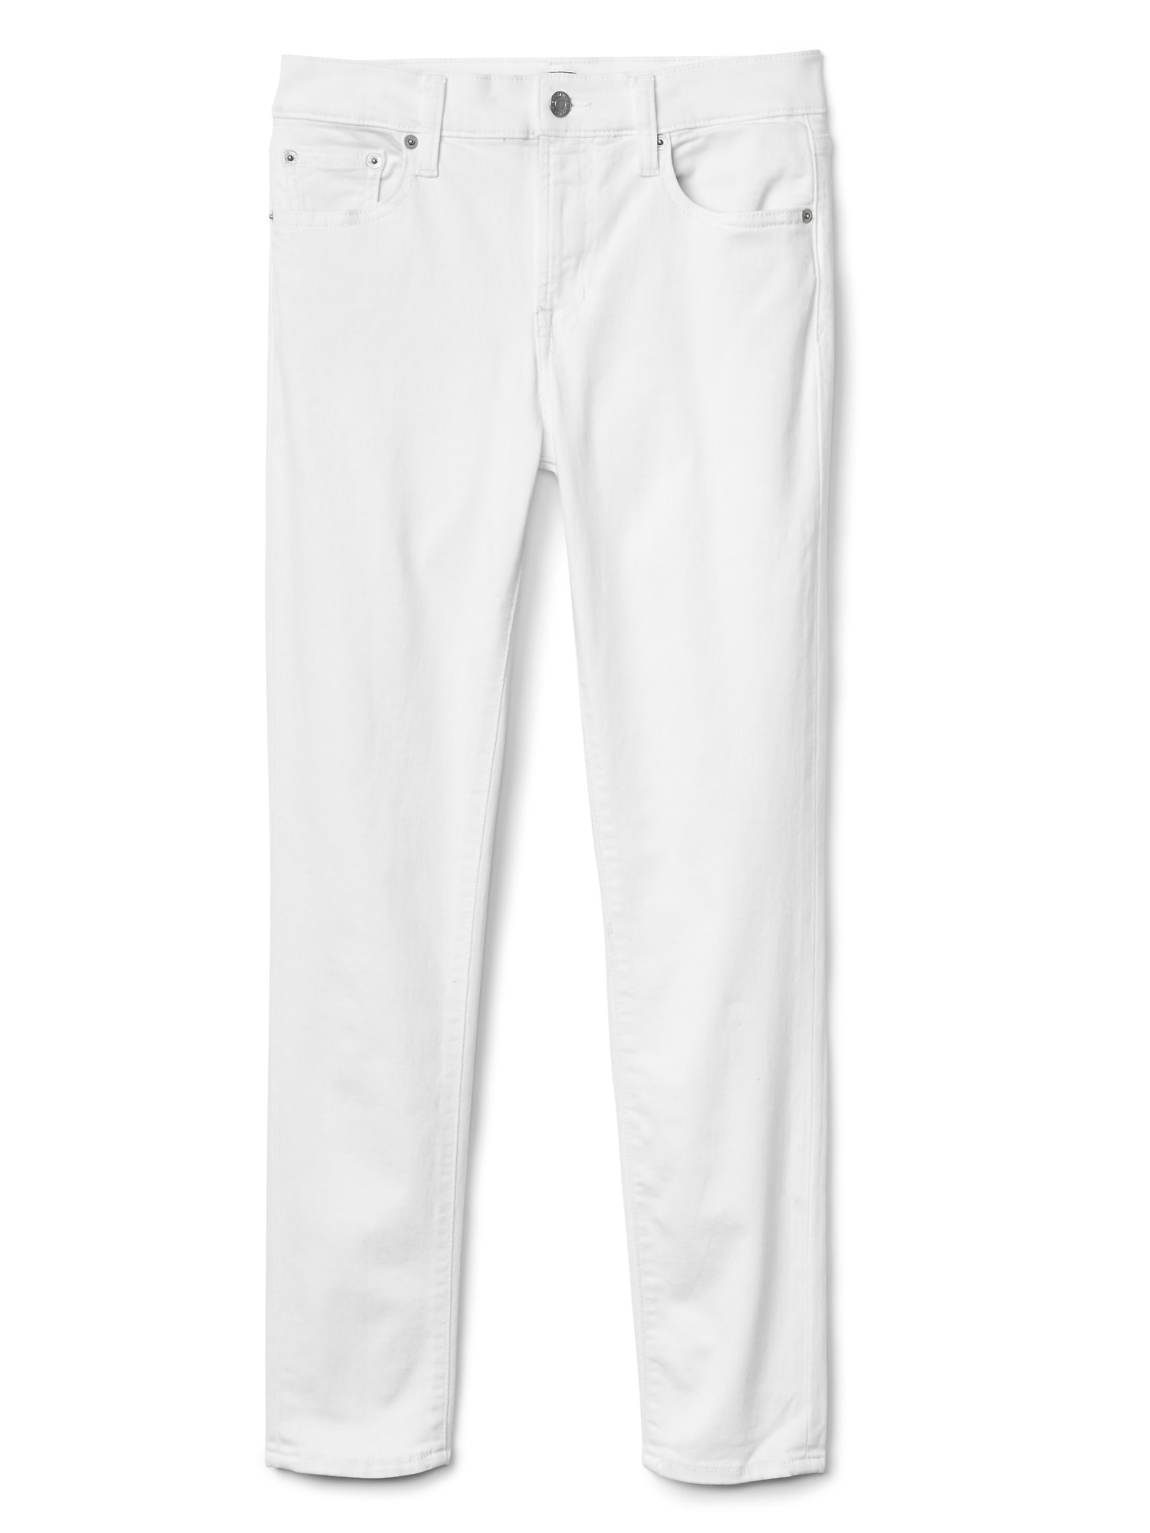 gap, skinny jeans, cropped jeans, white jeans